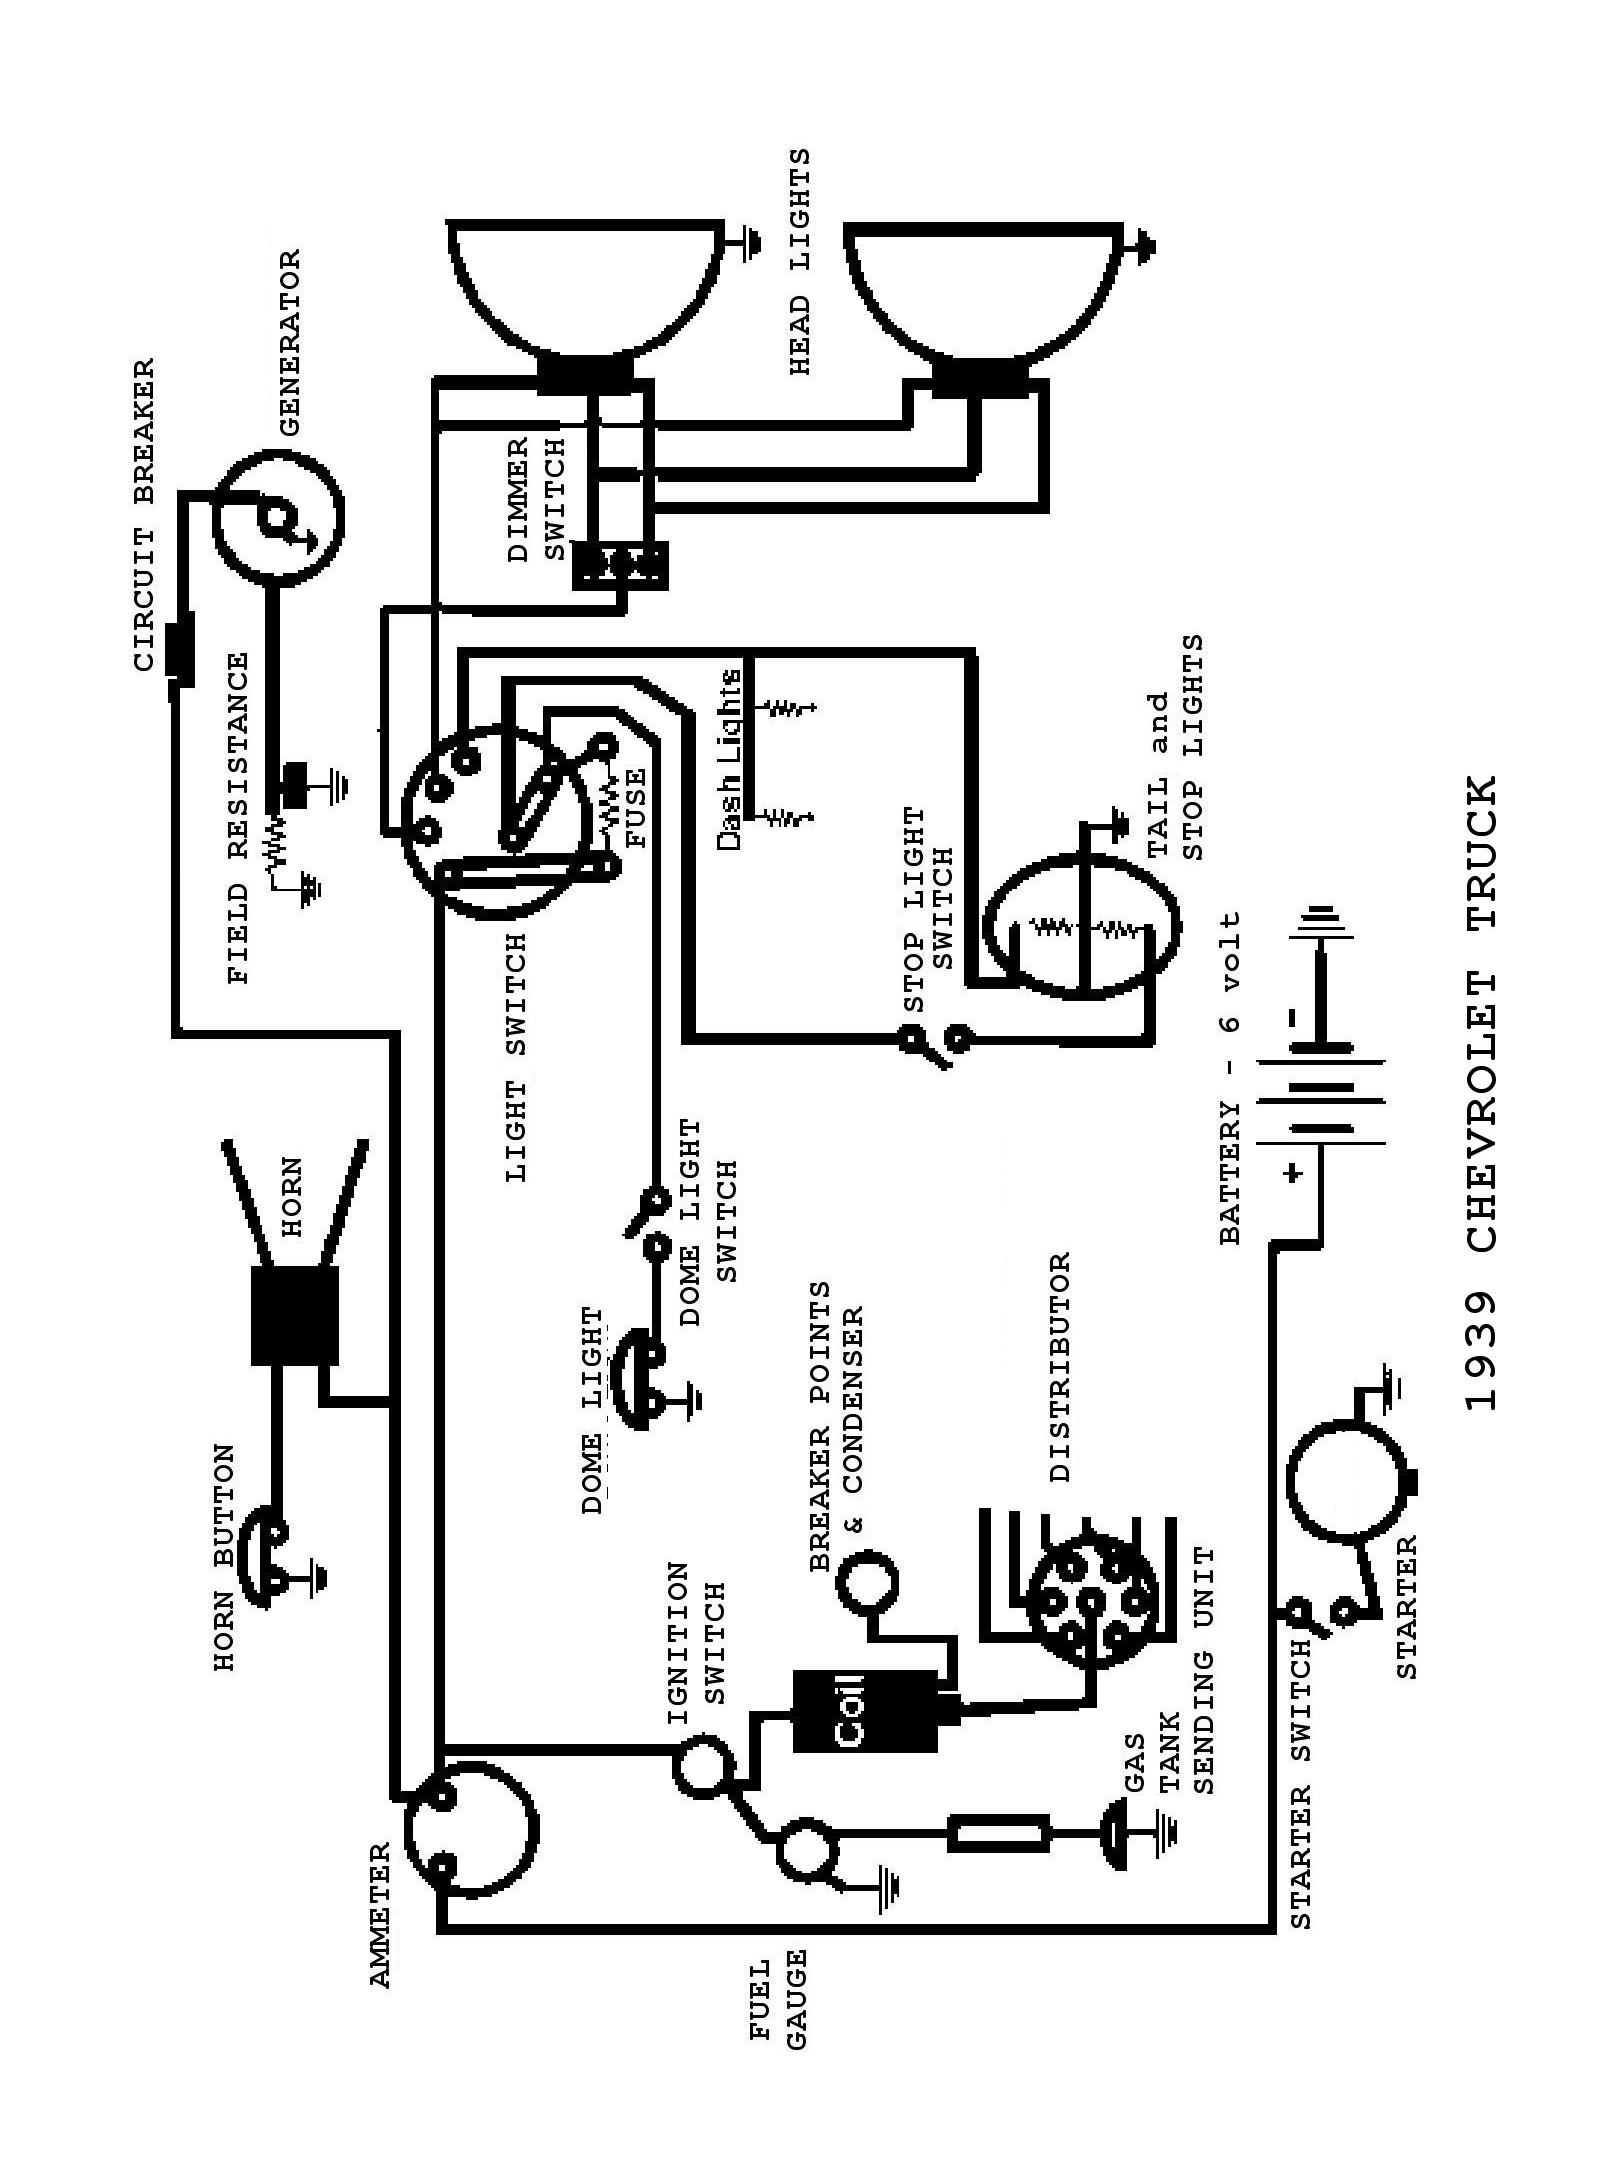 39truck ihc truck wiring diagrams mazda truck wiring diagrams \u2022 free  at bayanpartner.co